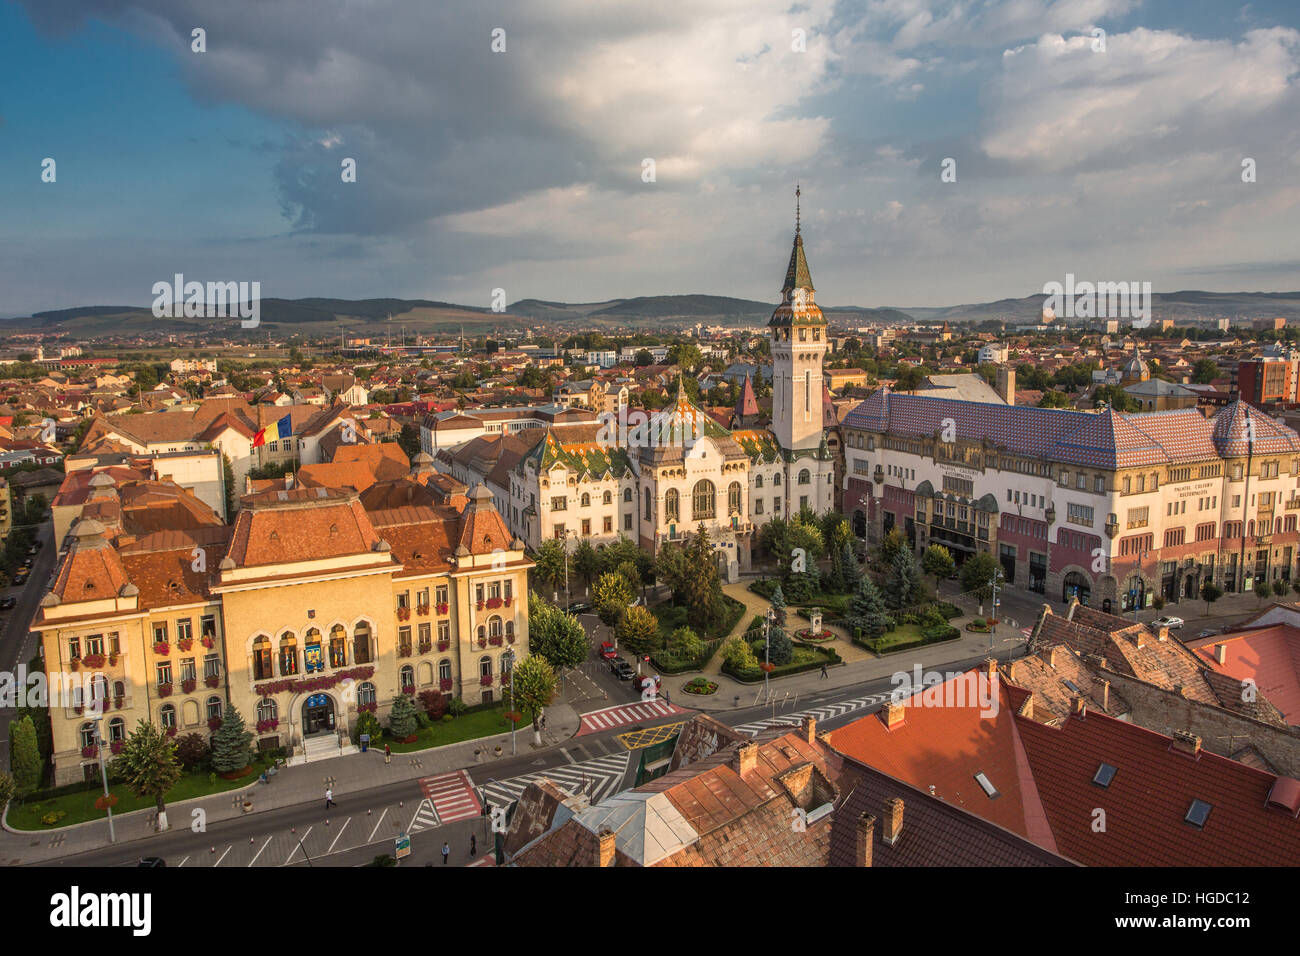 Romania, Romania, Targu Mures City, City Hall, Prefecture building and Culture Palace - Stock Image